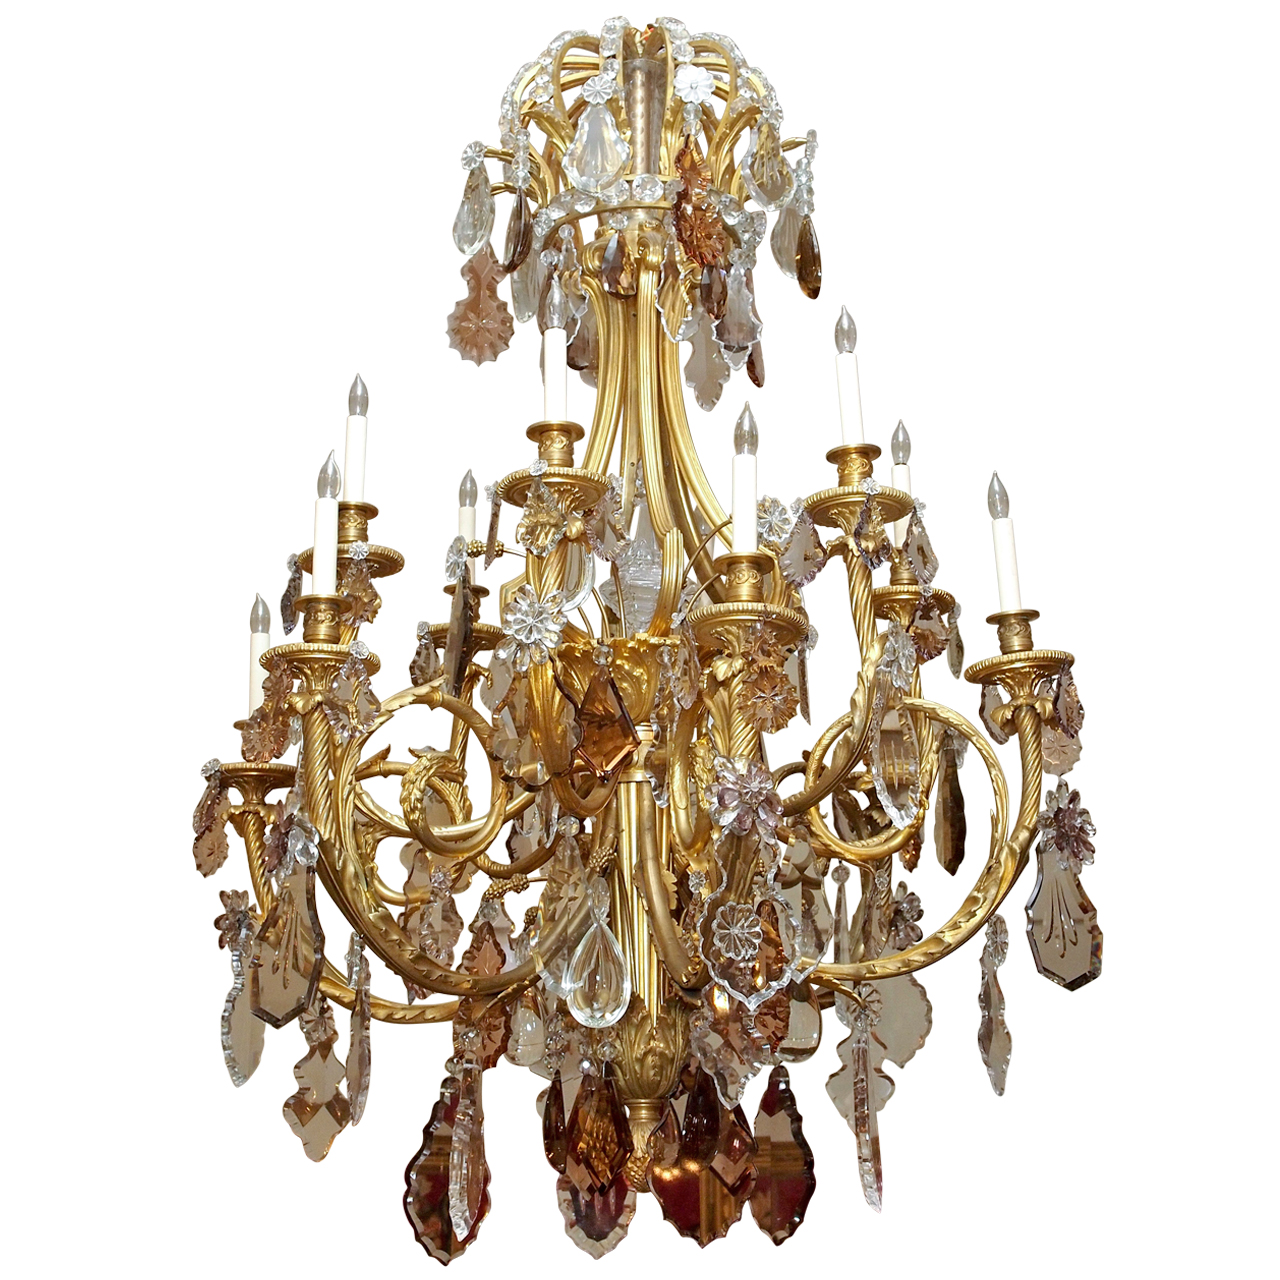 Antique museum quality french baccarat and ormolu crystal chandelier antique museum quality french baccarat and ormolu crystal chandelier aloadofball Choice Image